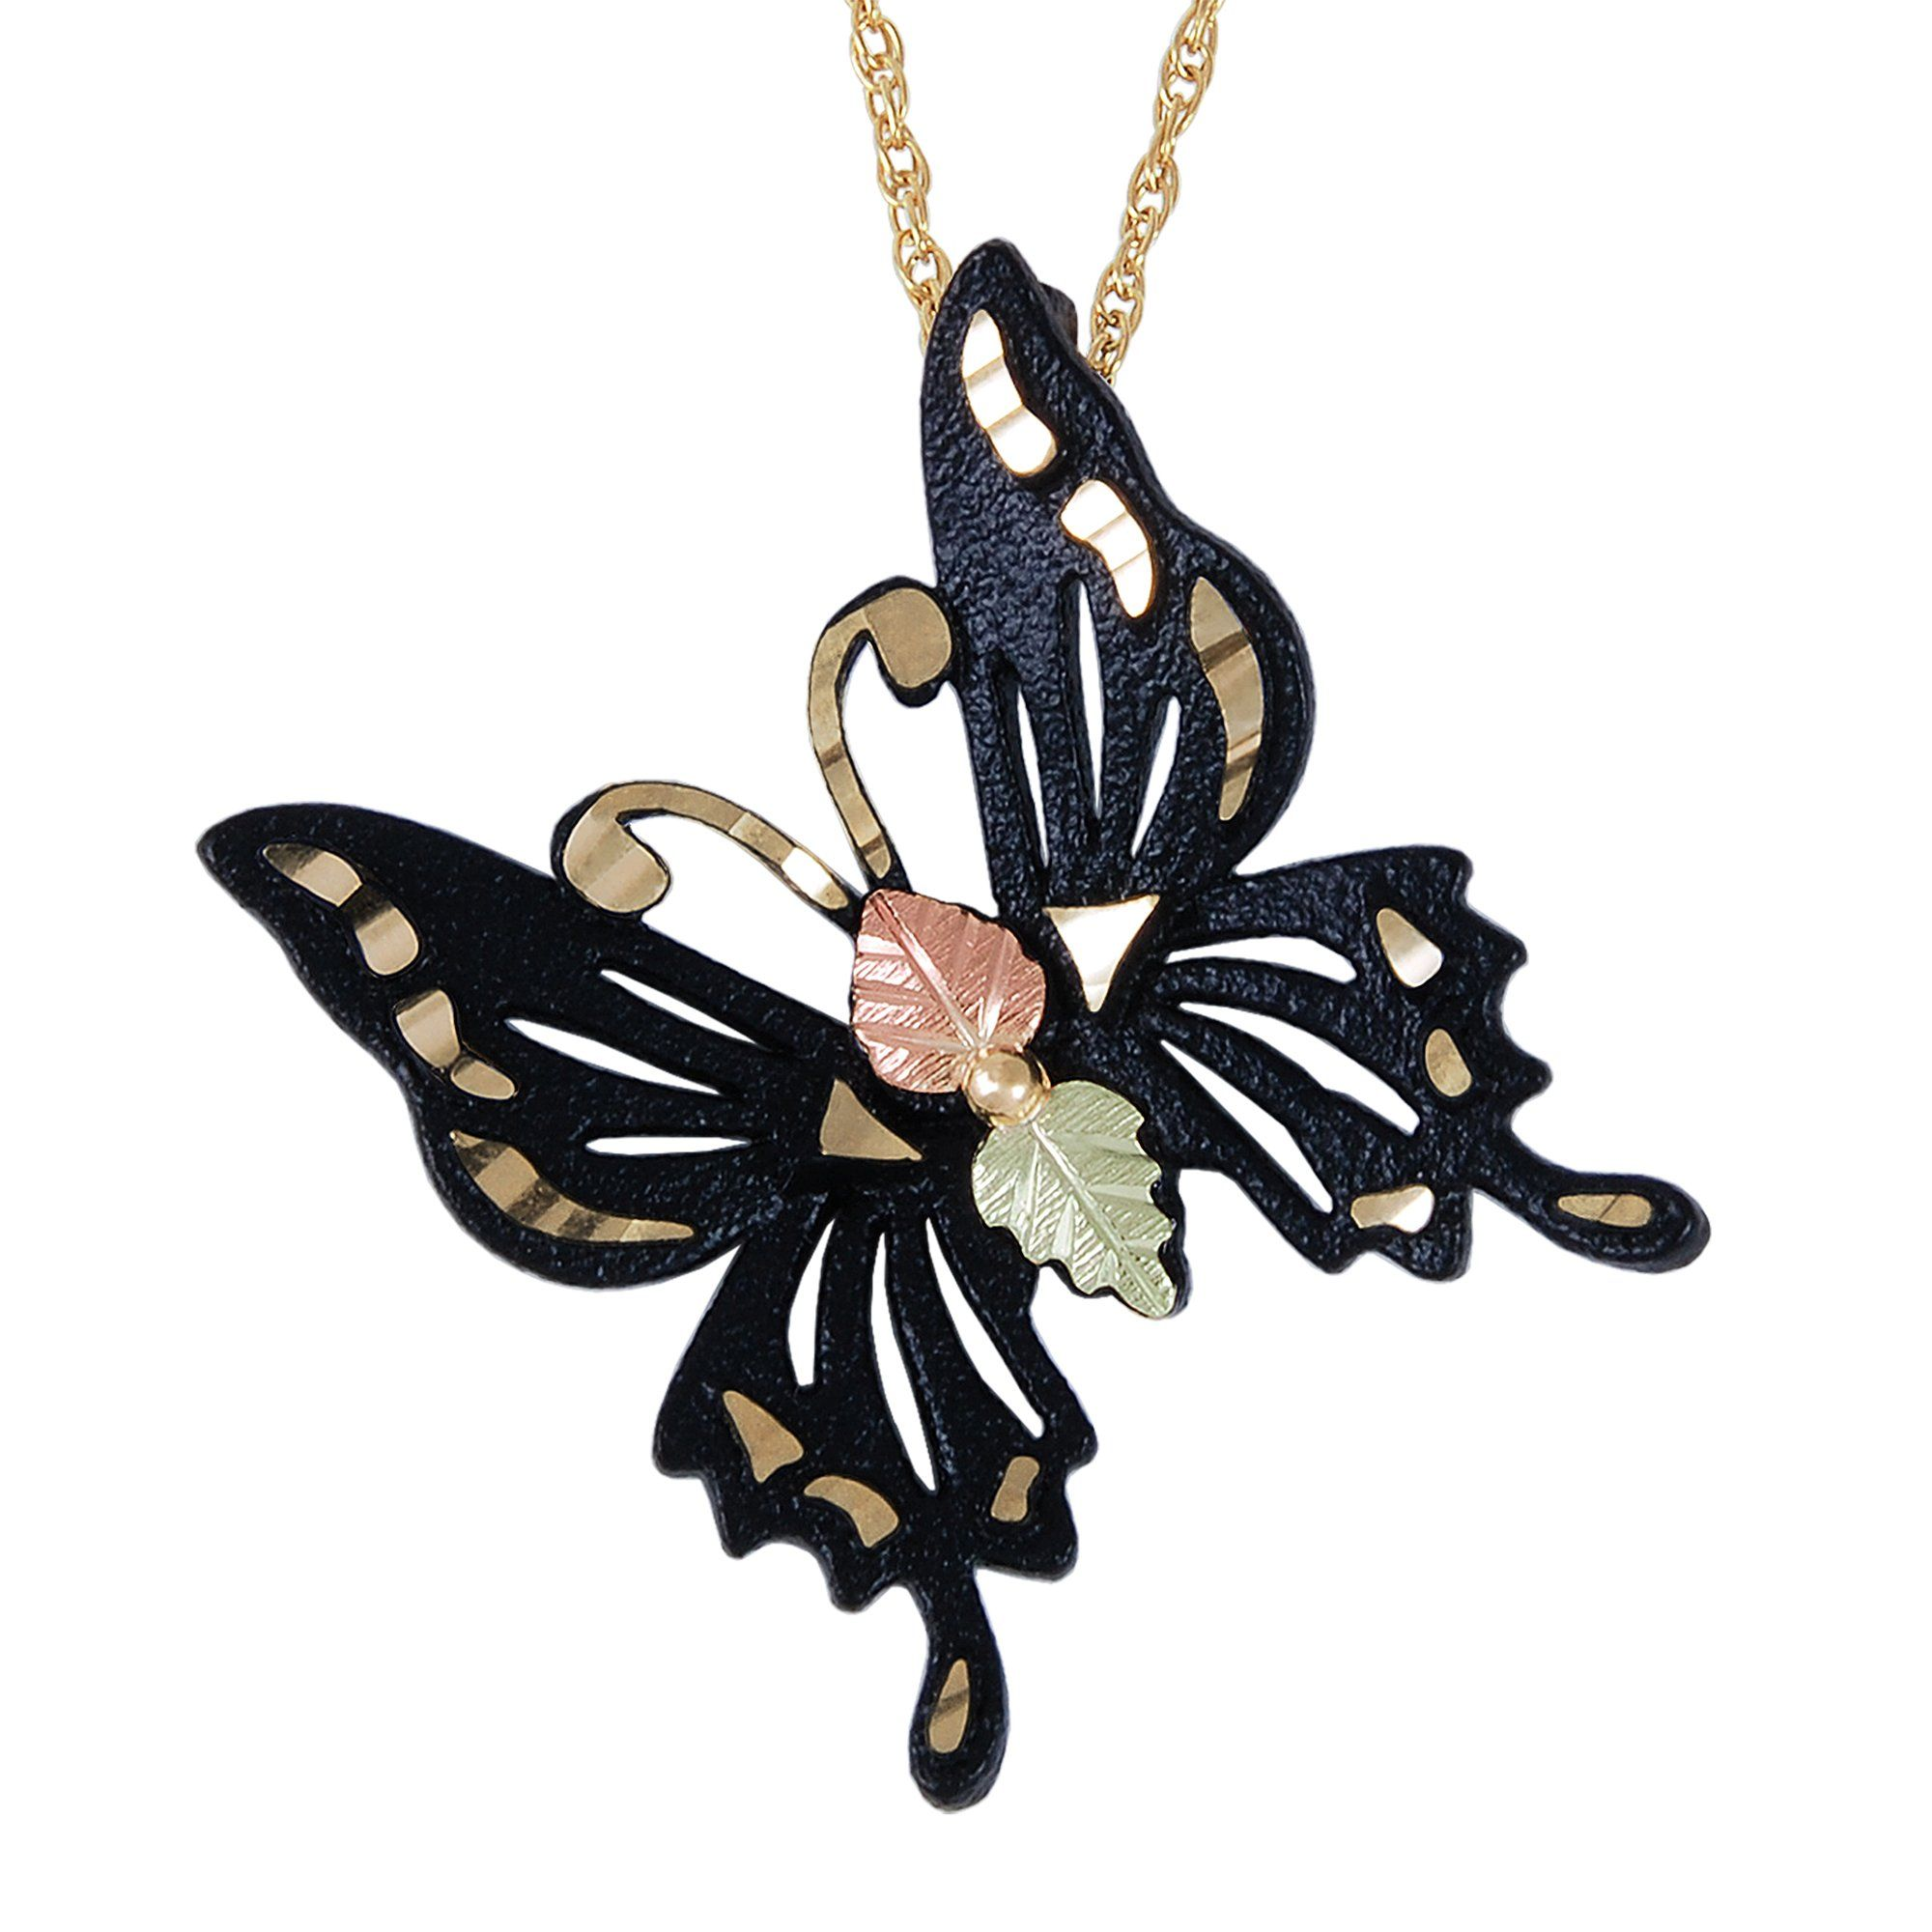 d8b5c5eeeb5a6 Black Butterfly Pendant & Necklace - Black Hills Gold in 2019 ...